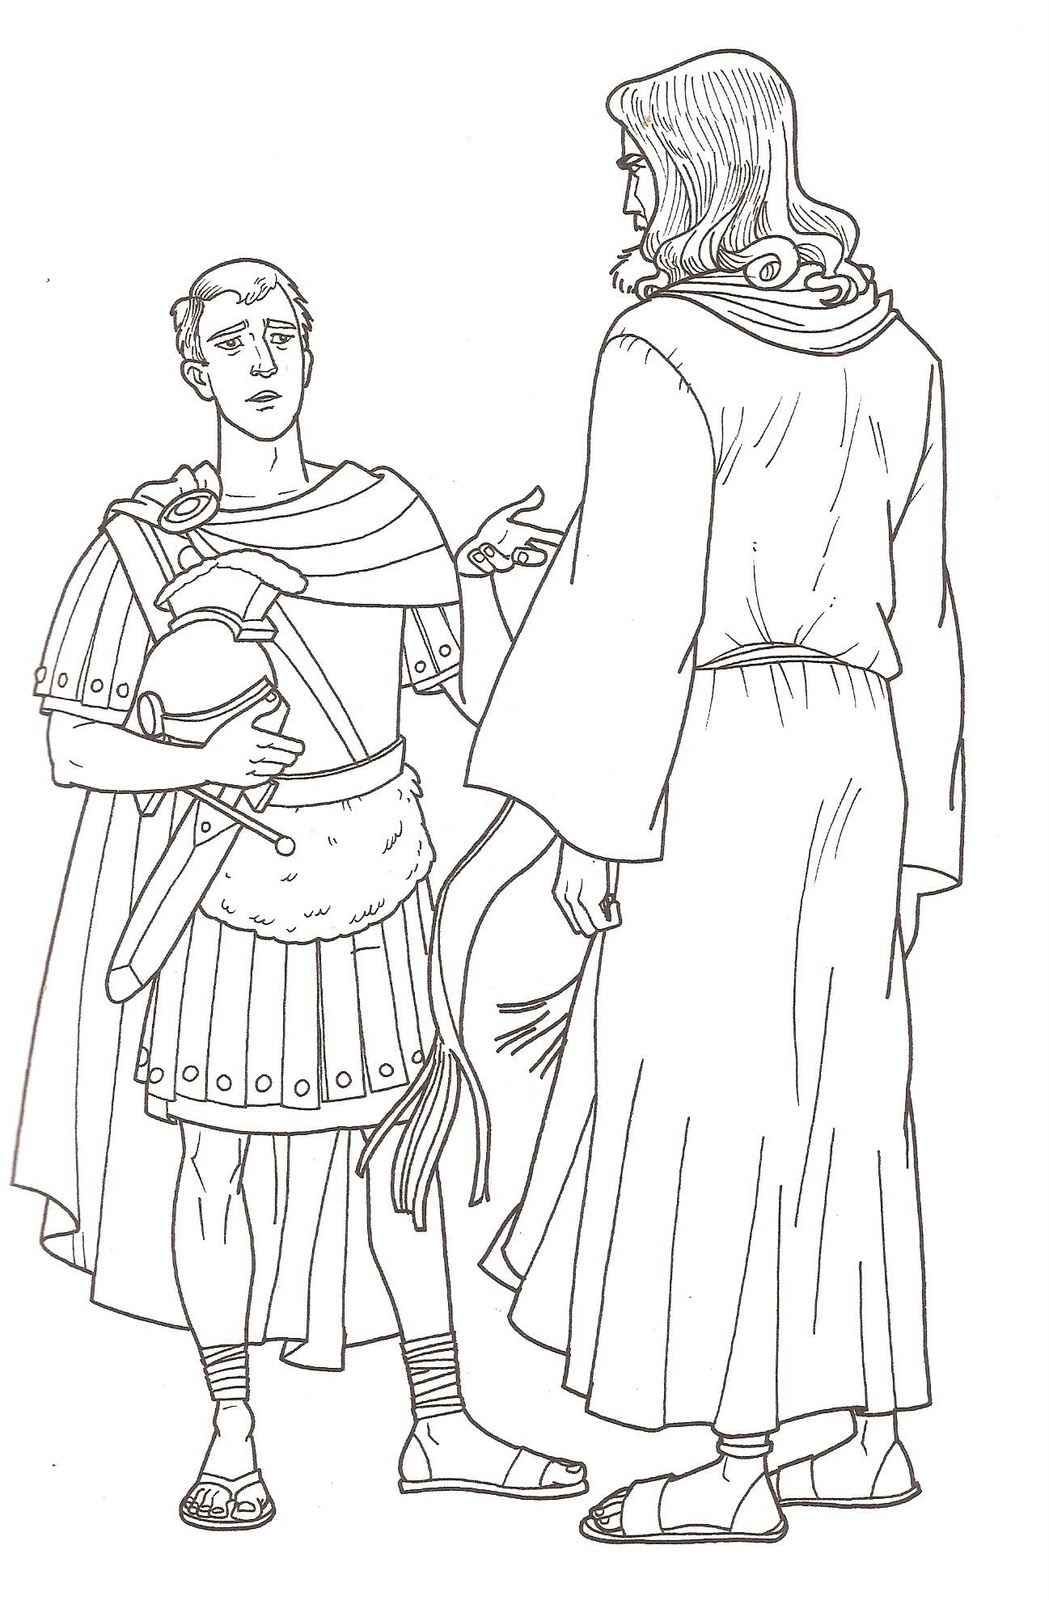 centurion servant coloring pages - photo#3